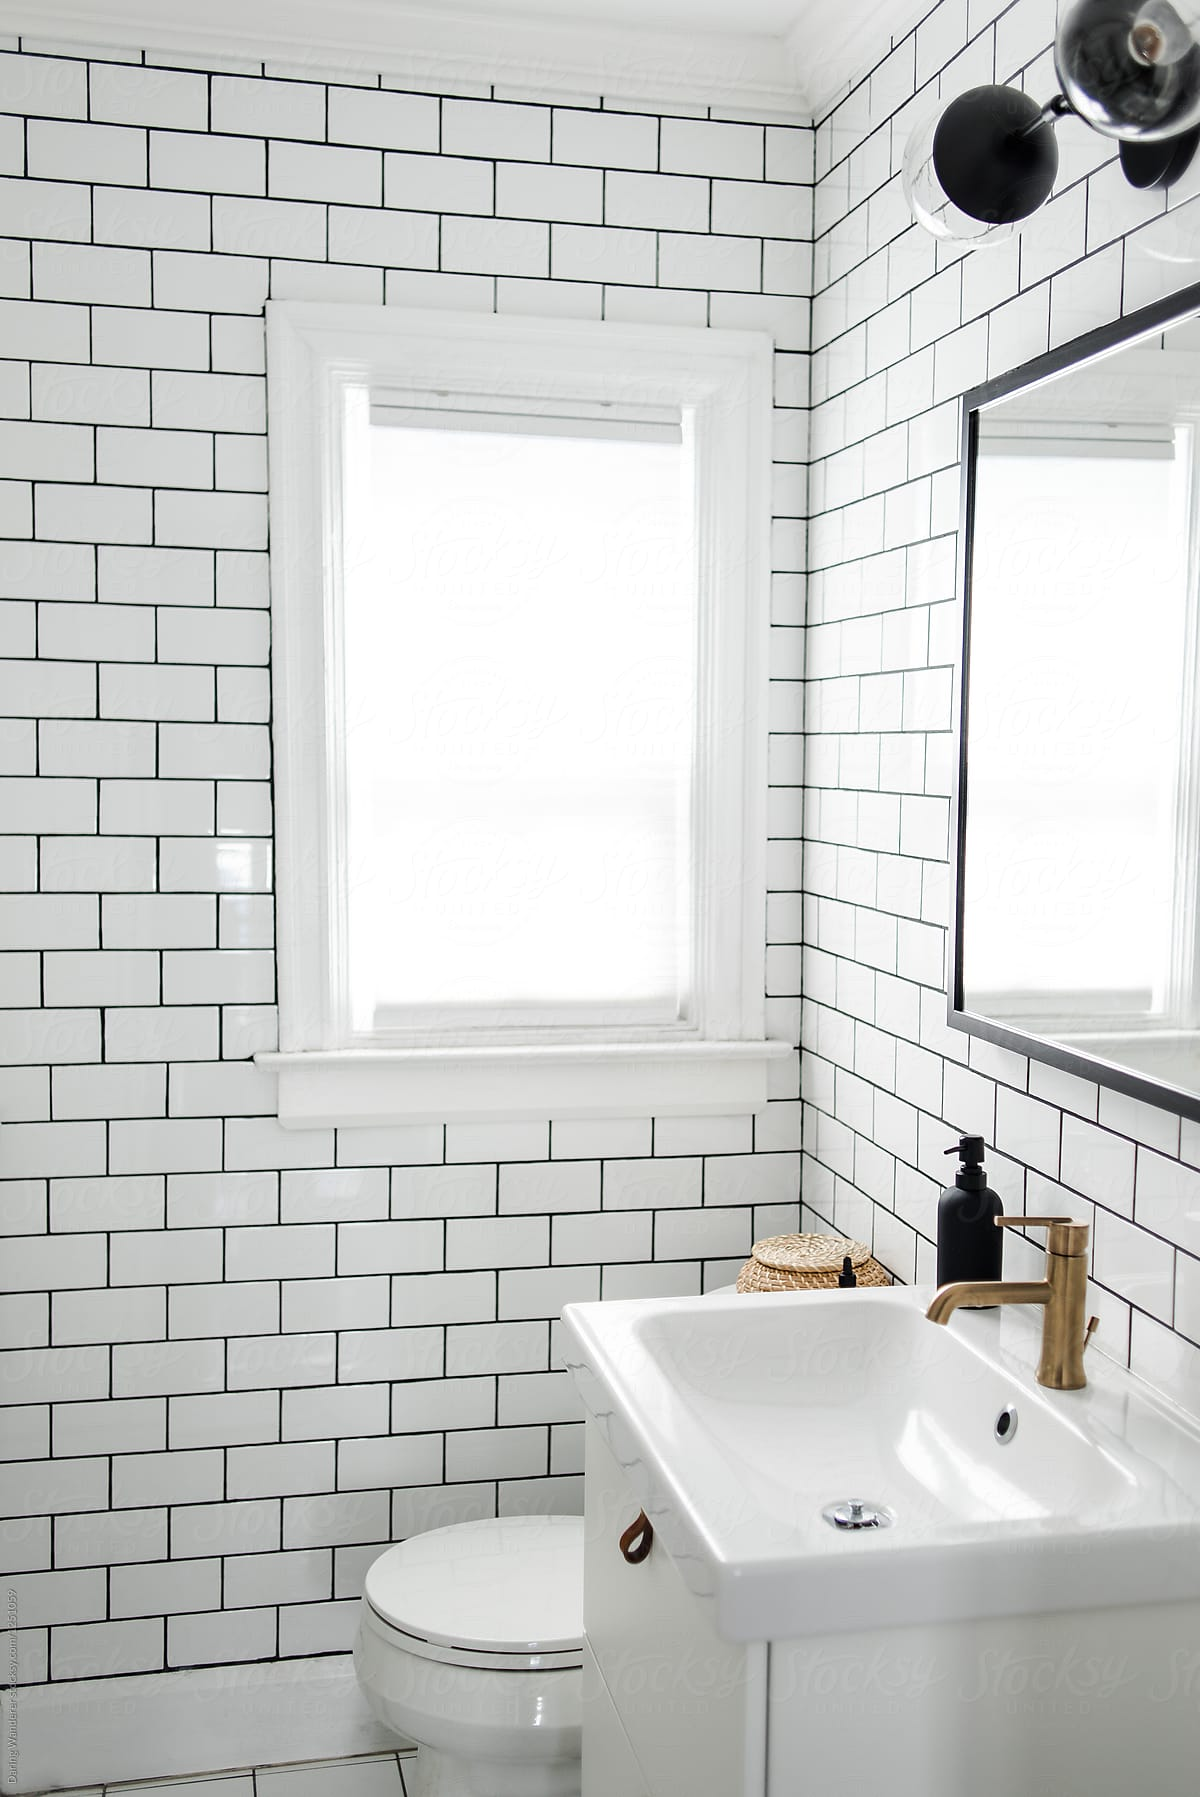 Minimalist Small Bathroom Renovation With White Subway Tile And IKEA ...